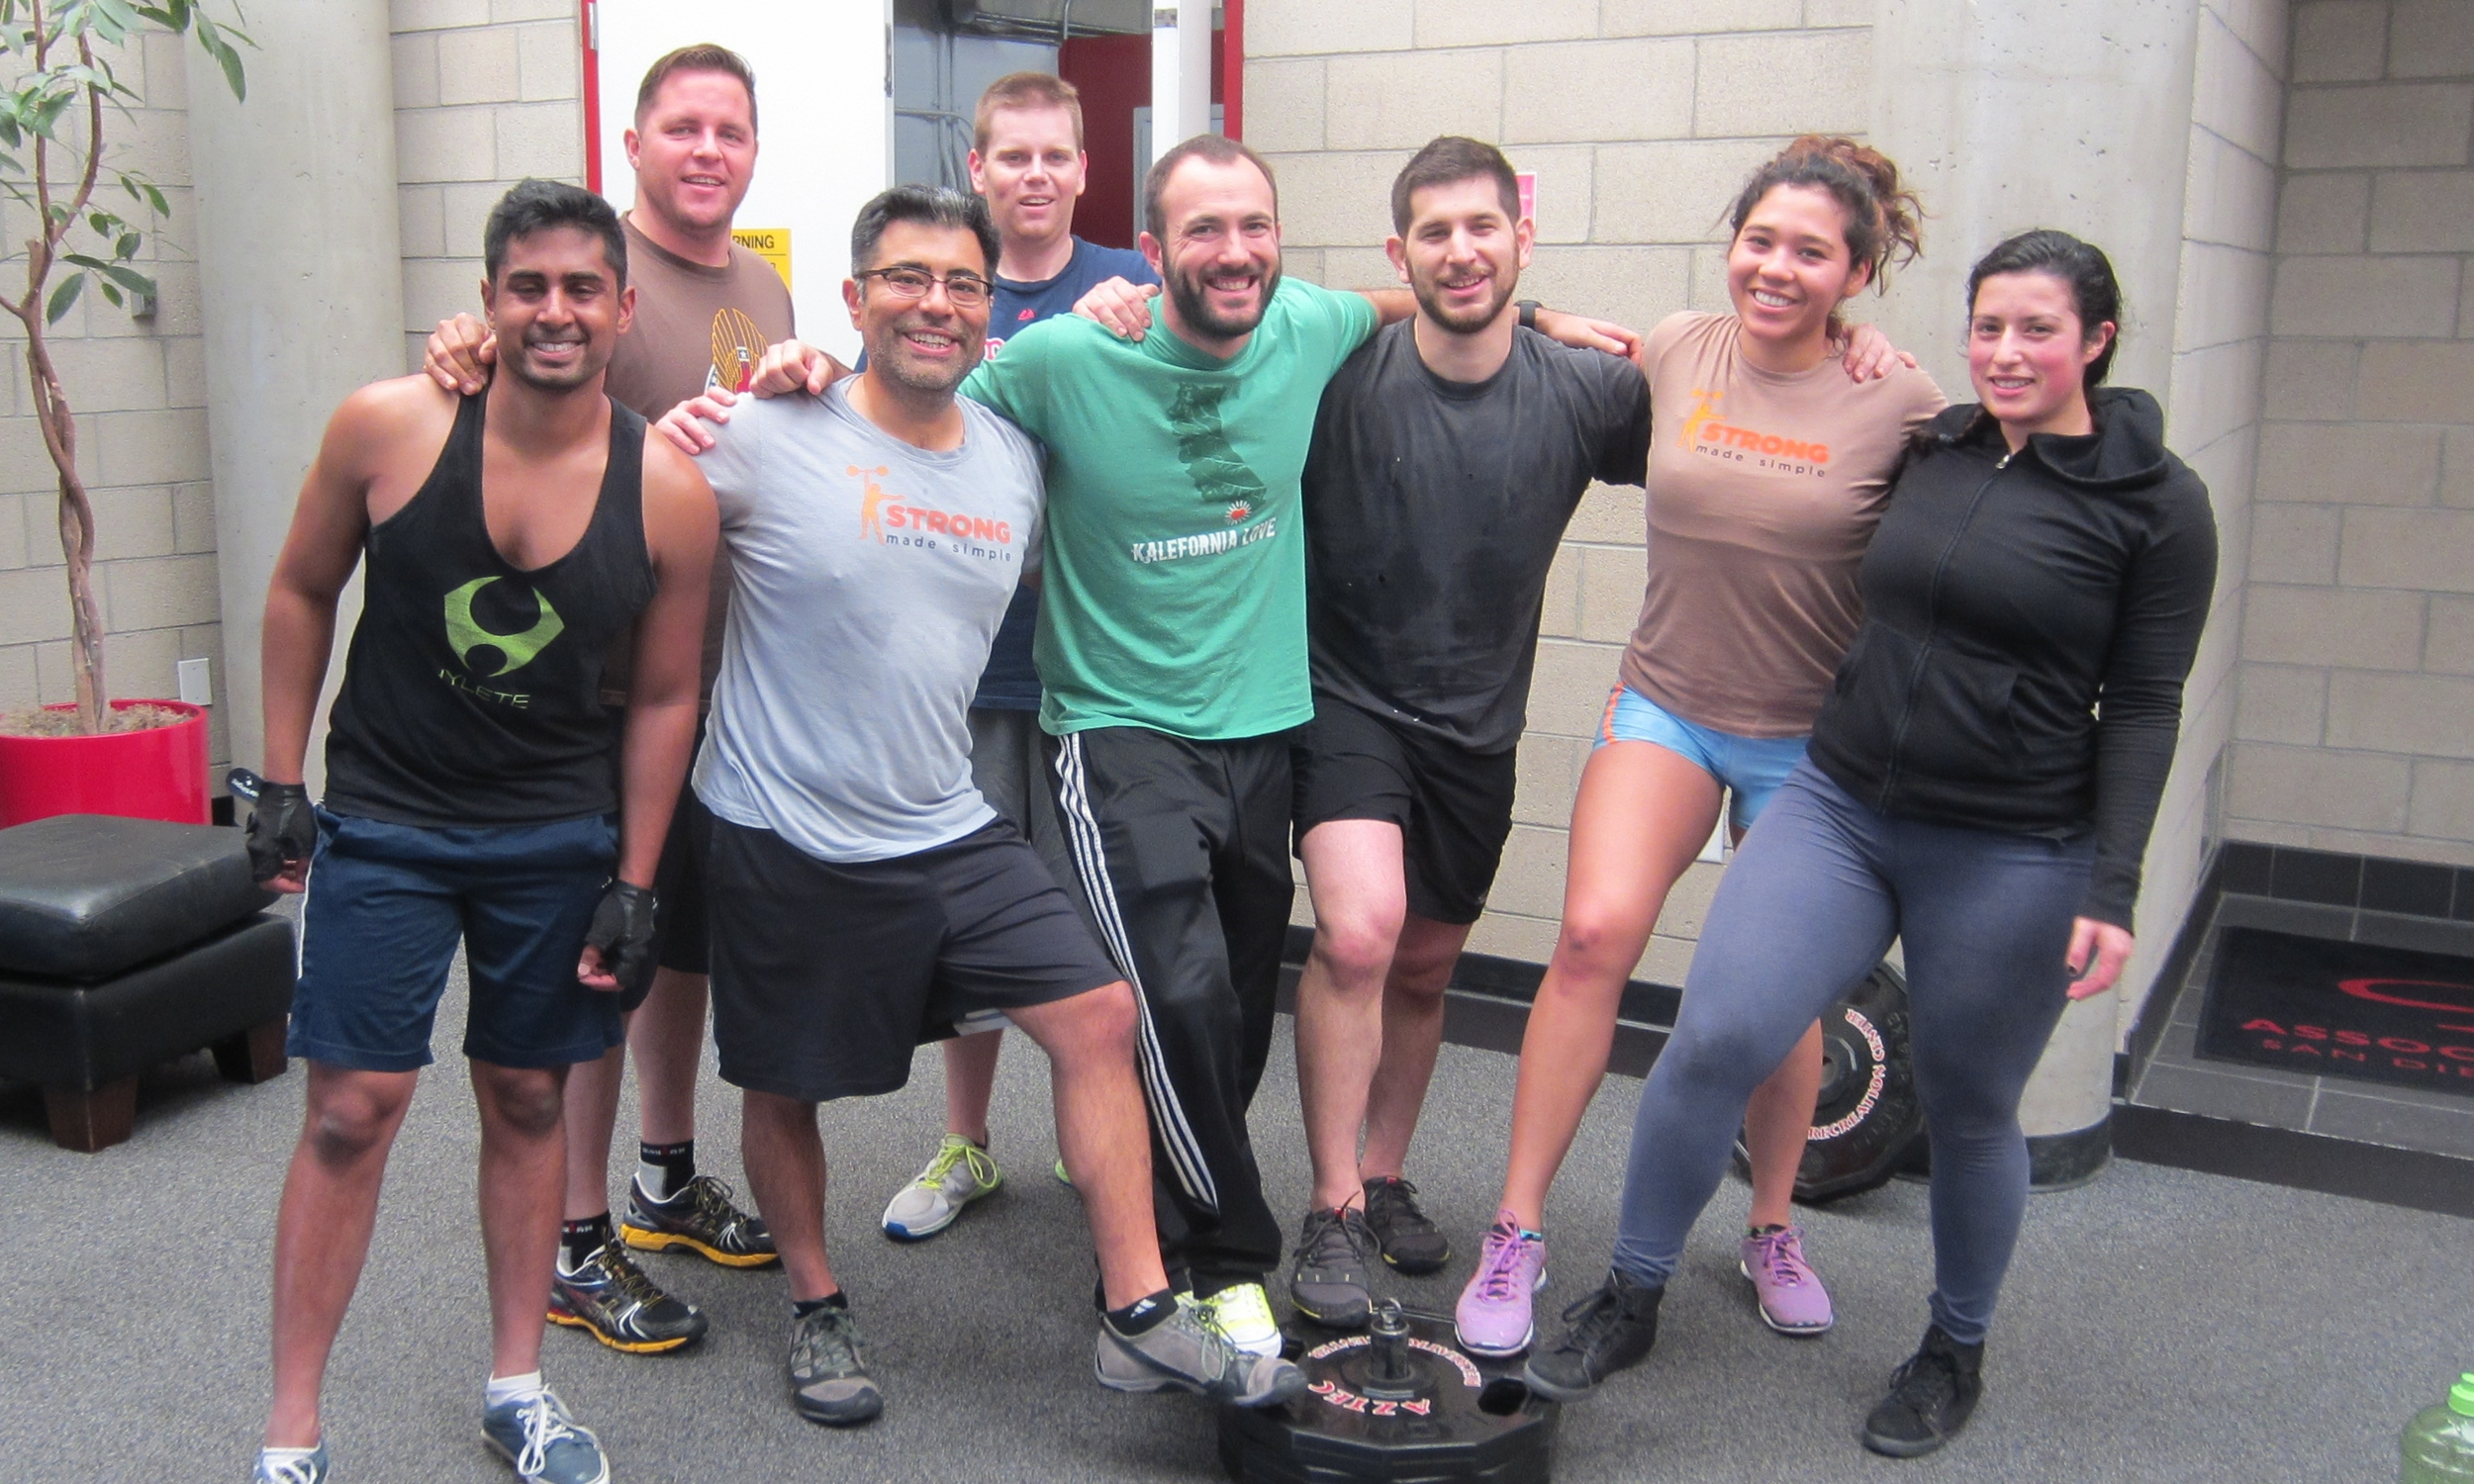 Strong Made Simple personal training clients after a fun and grueling Saturday sled workout in San Diego.